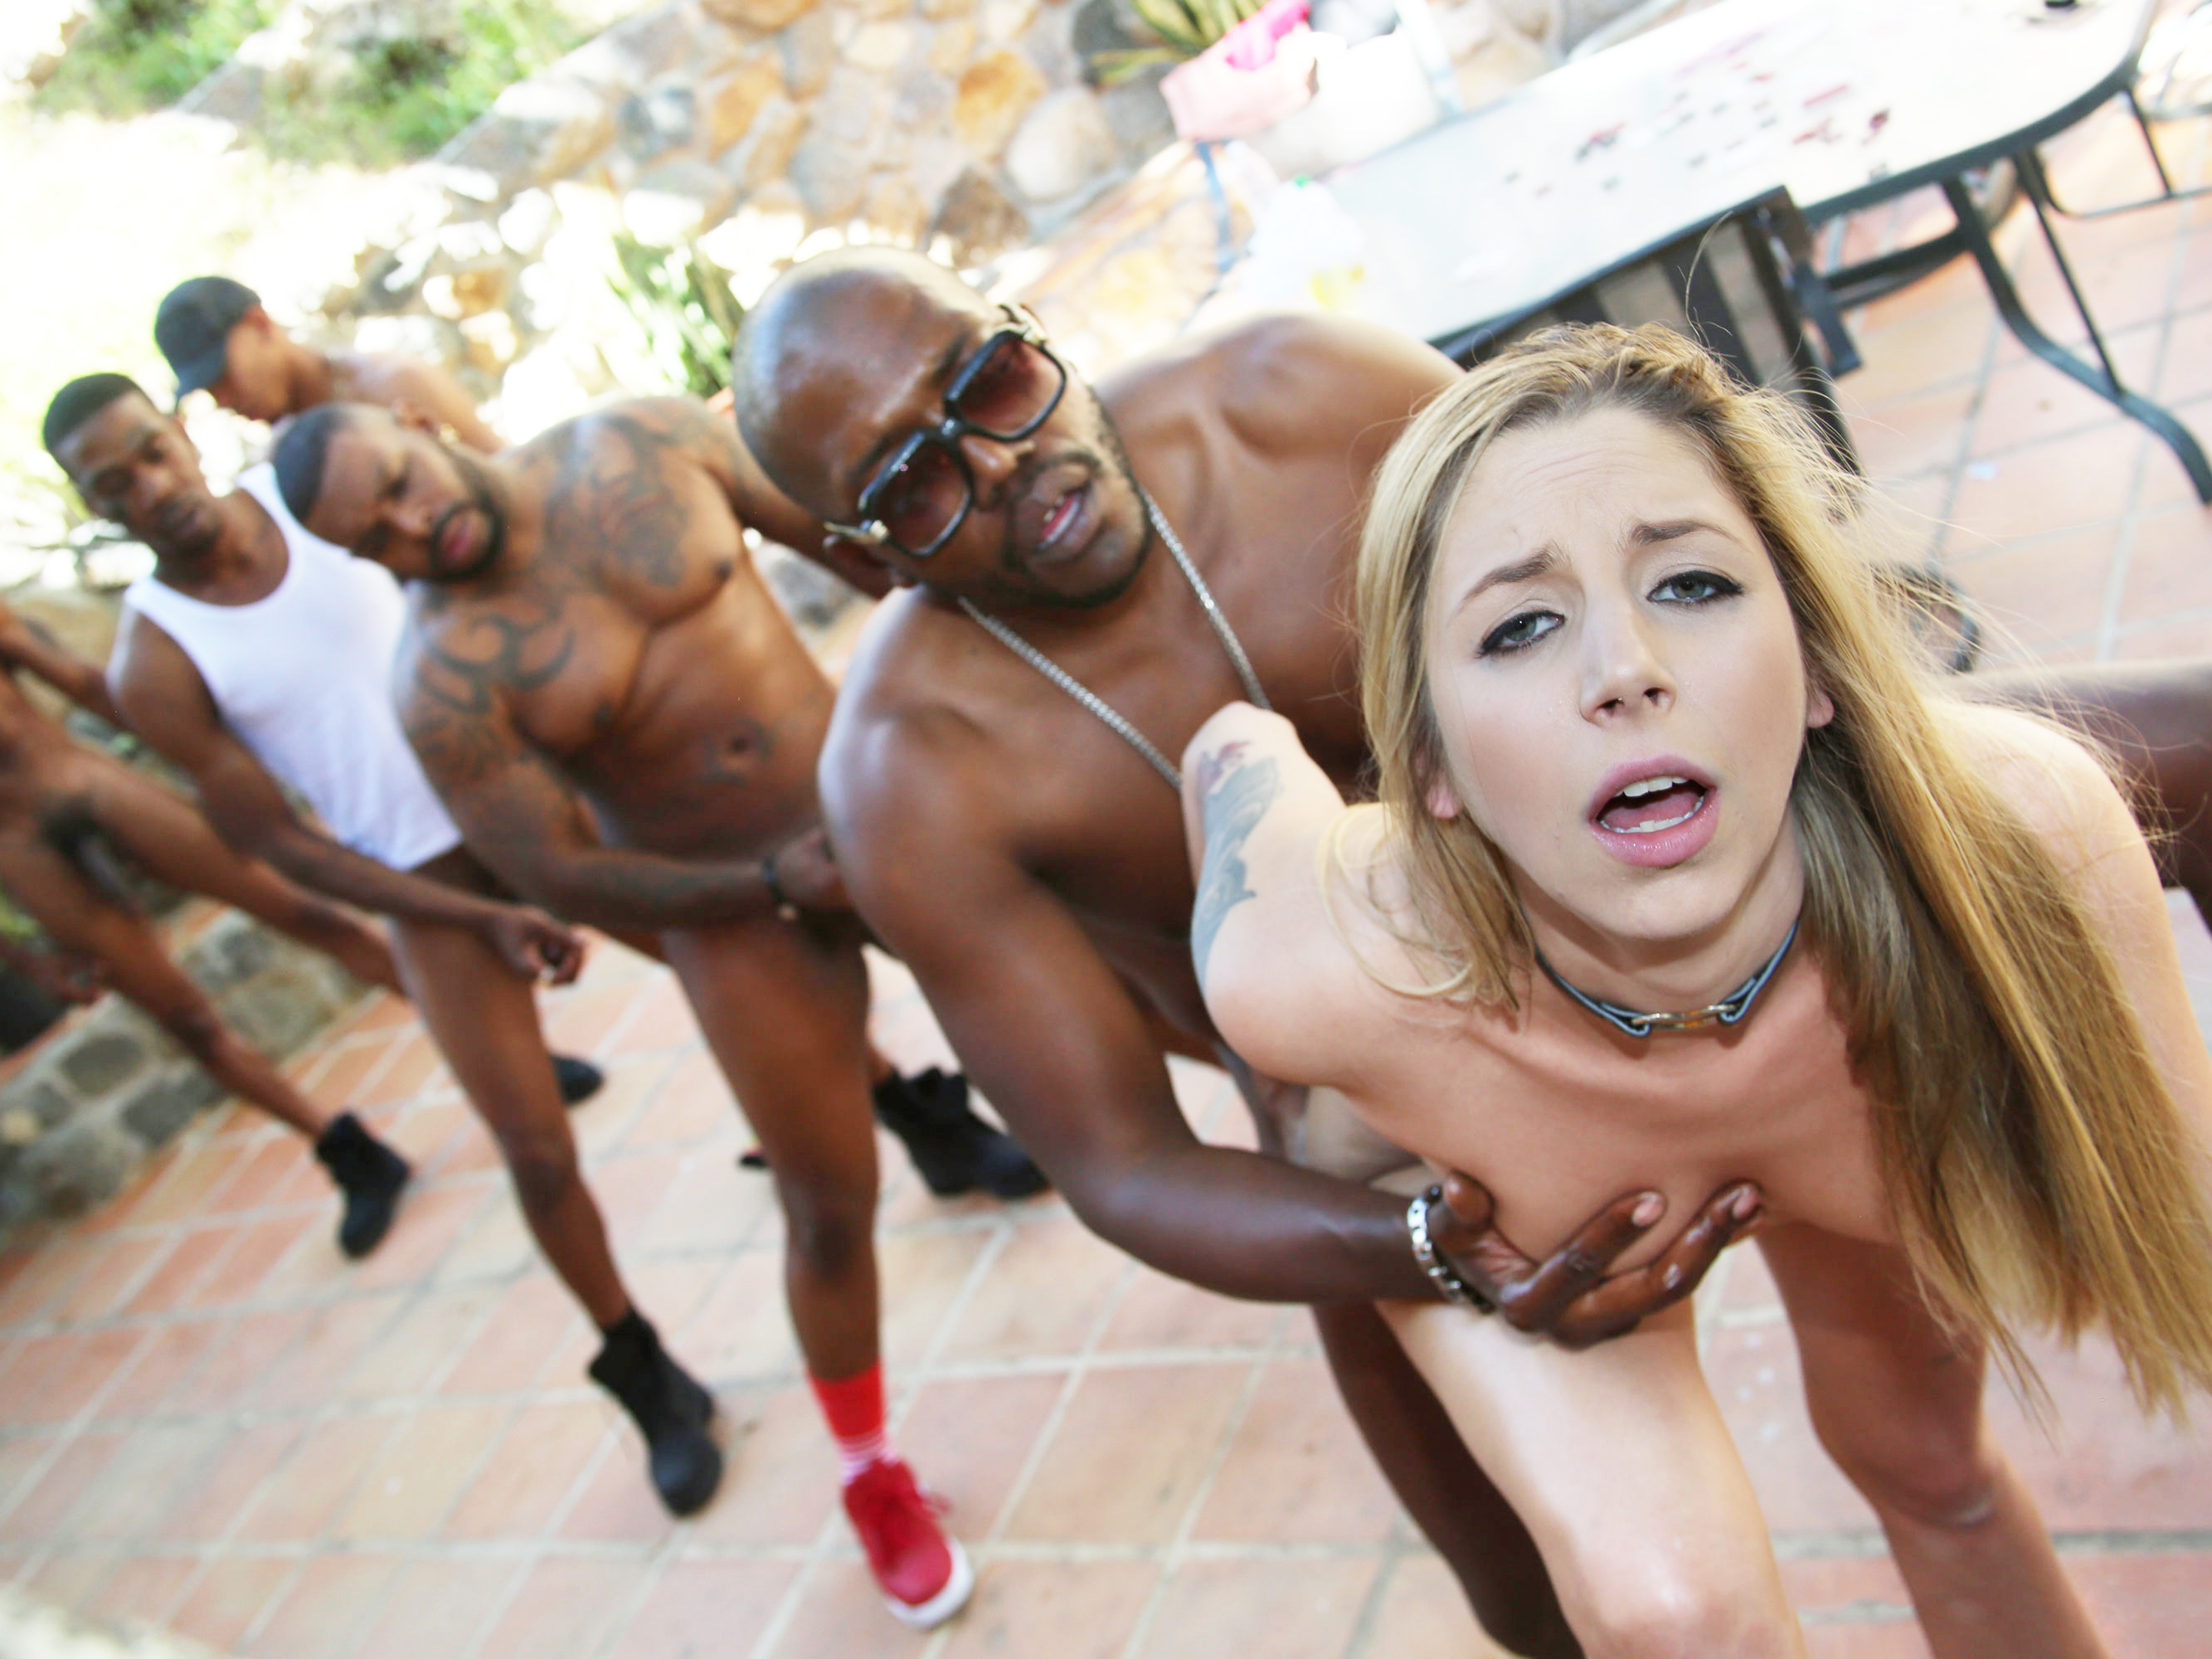 Alexa tomas cuckold threesome - 3 1